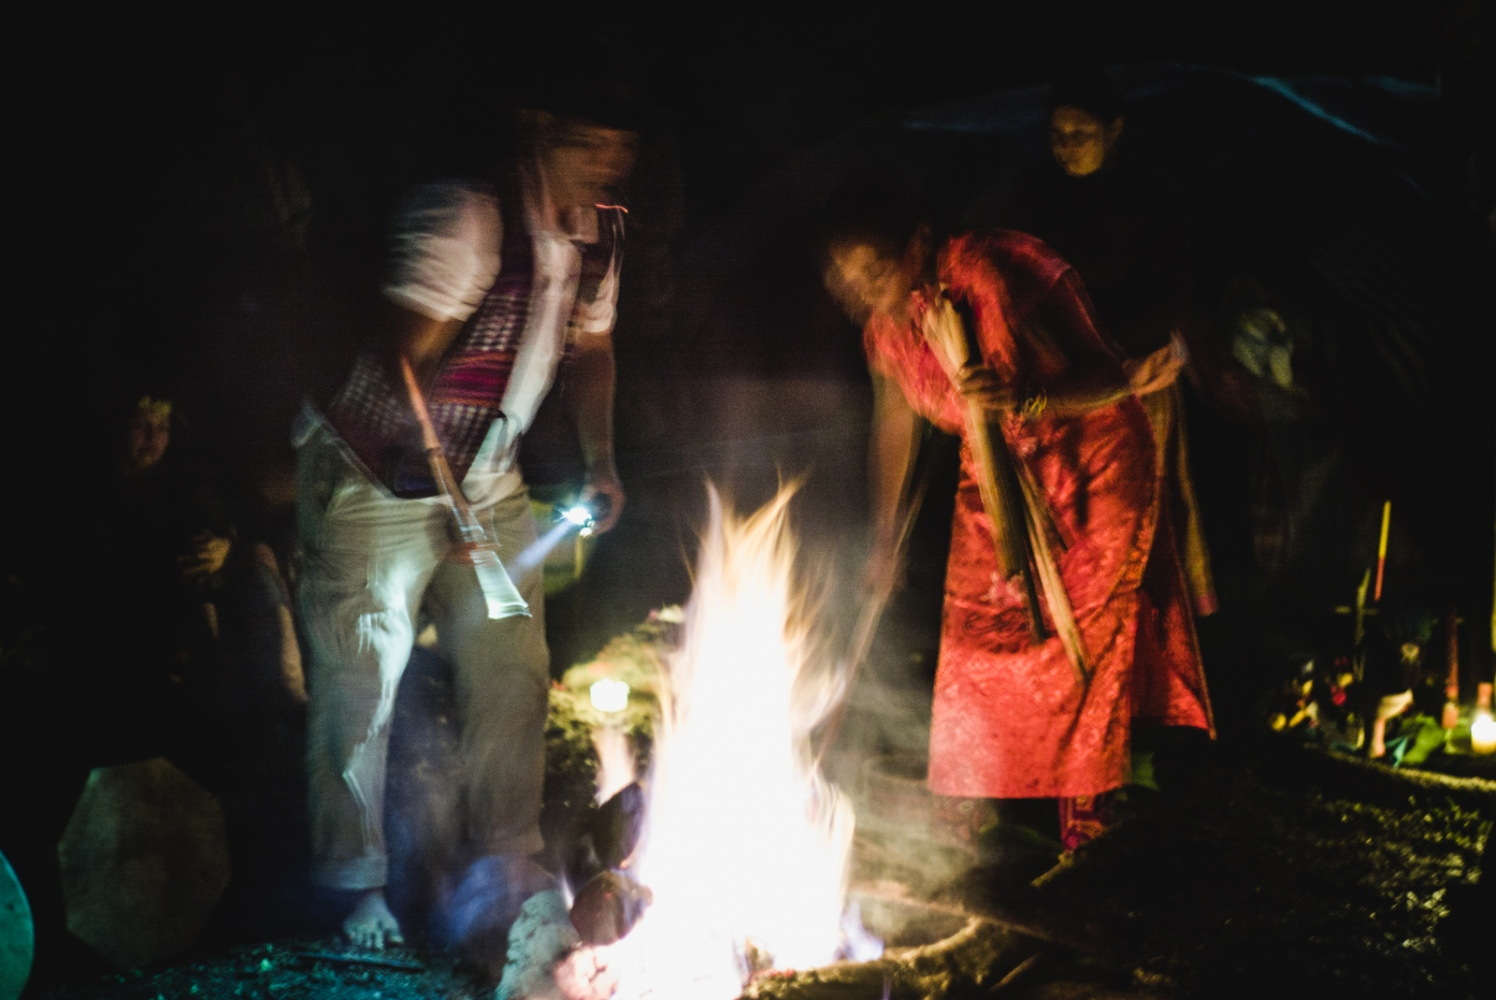 Visionaries offer their prayers to the sacred fire during the Closing Ceremony of the Vision Quest.